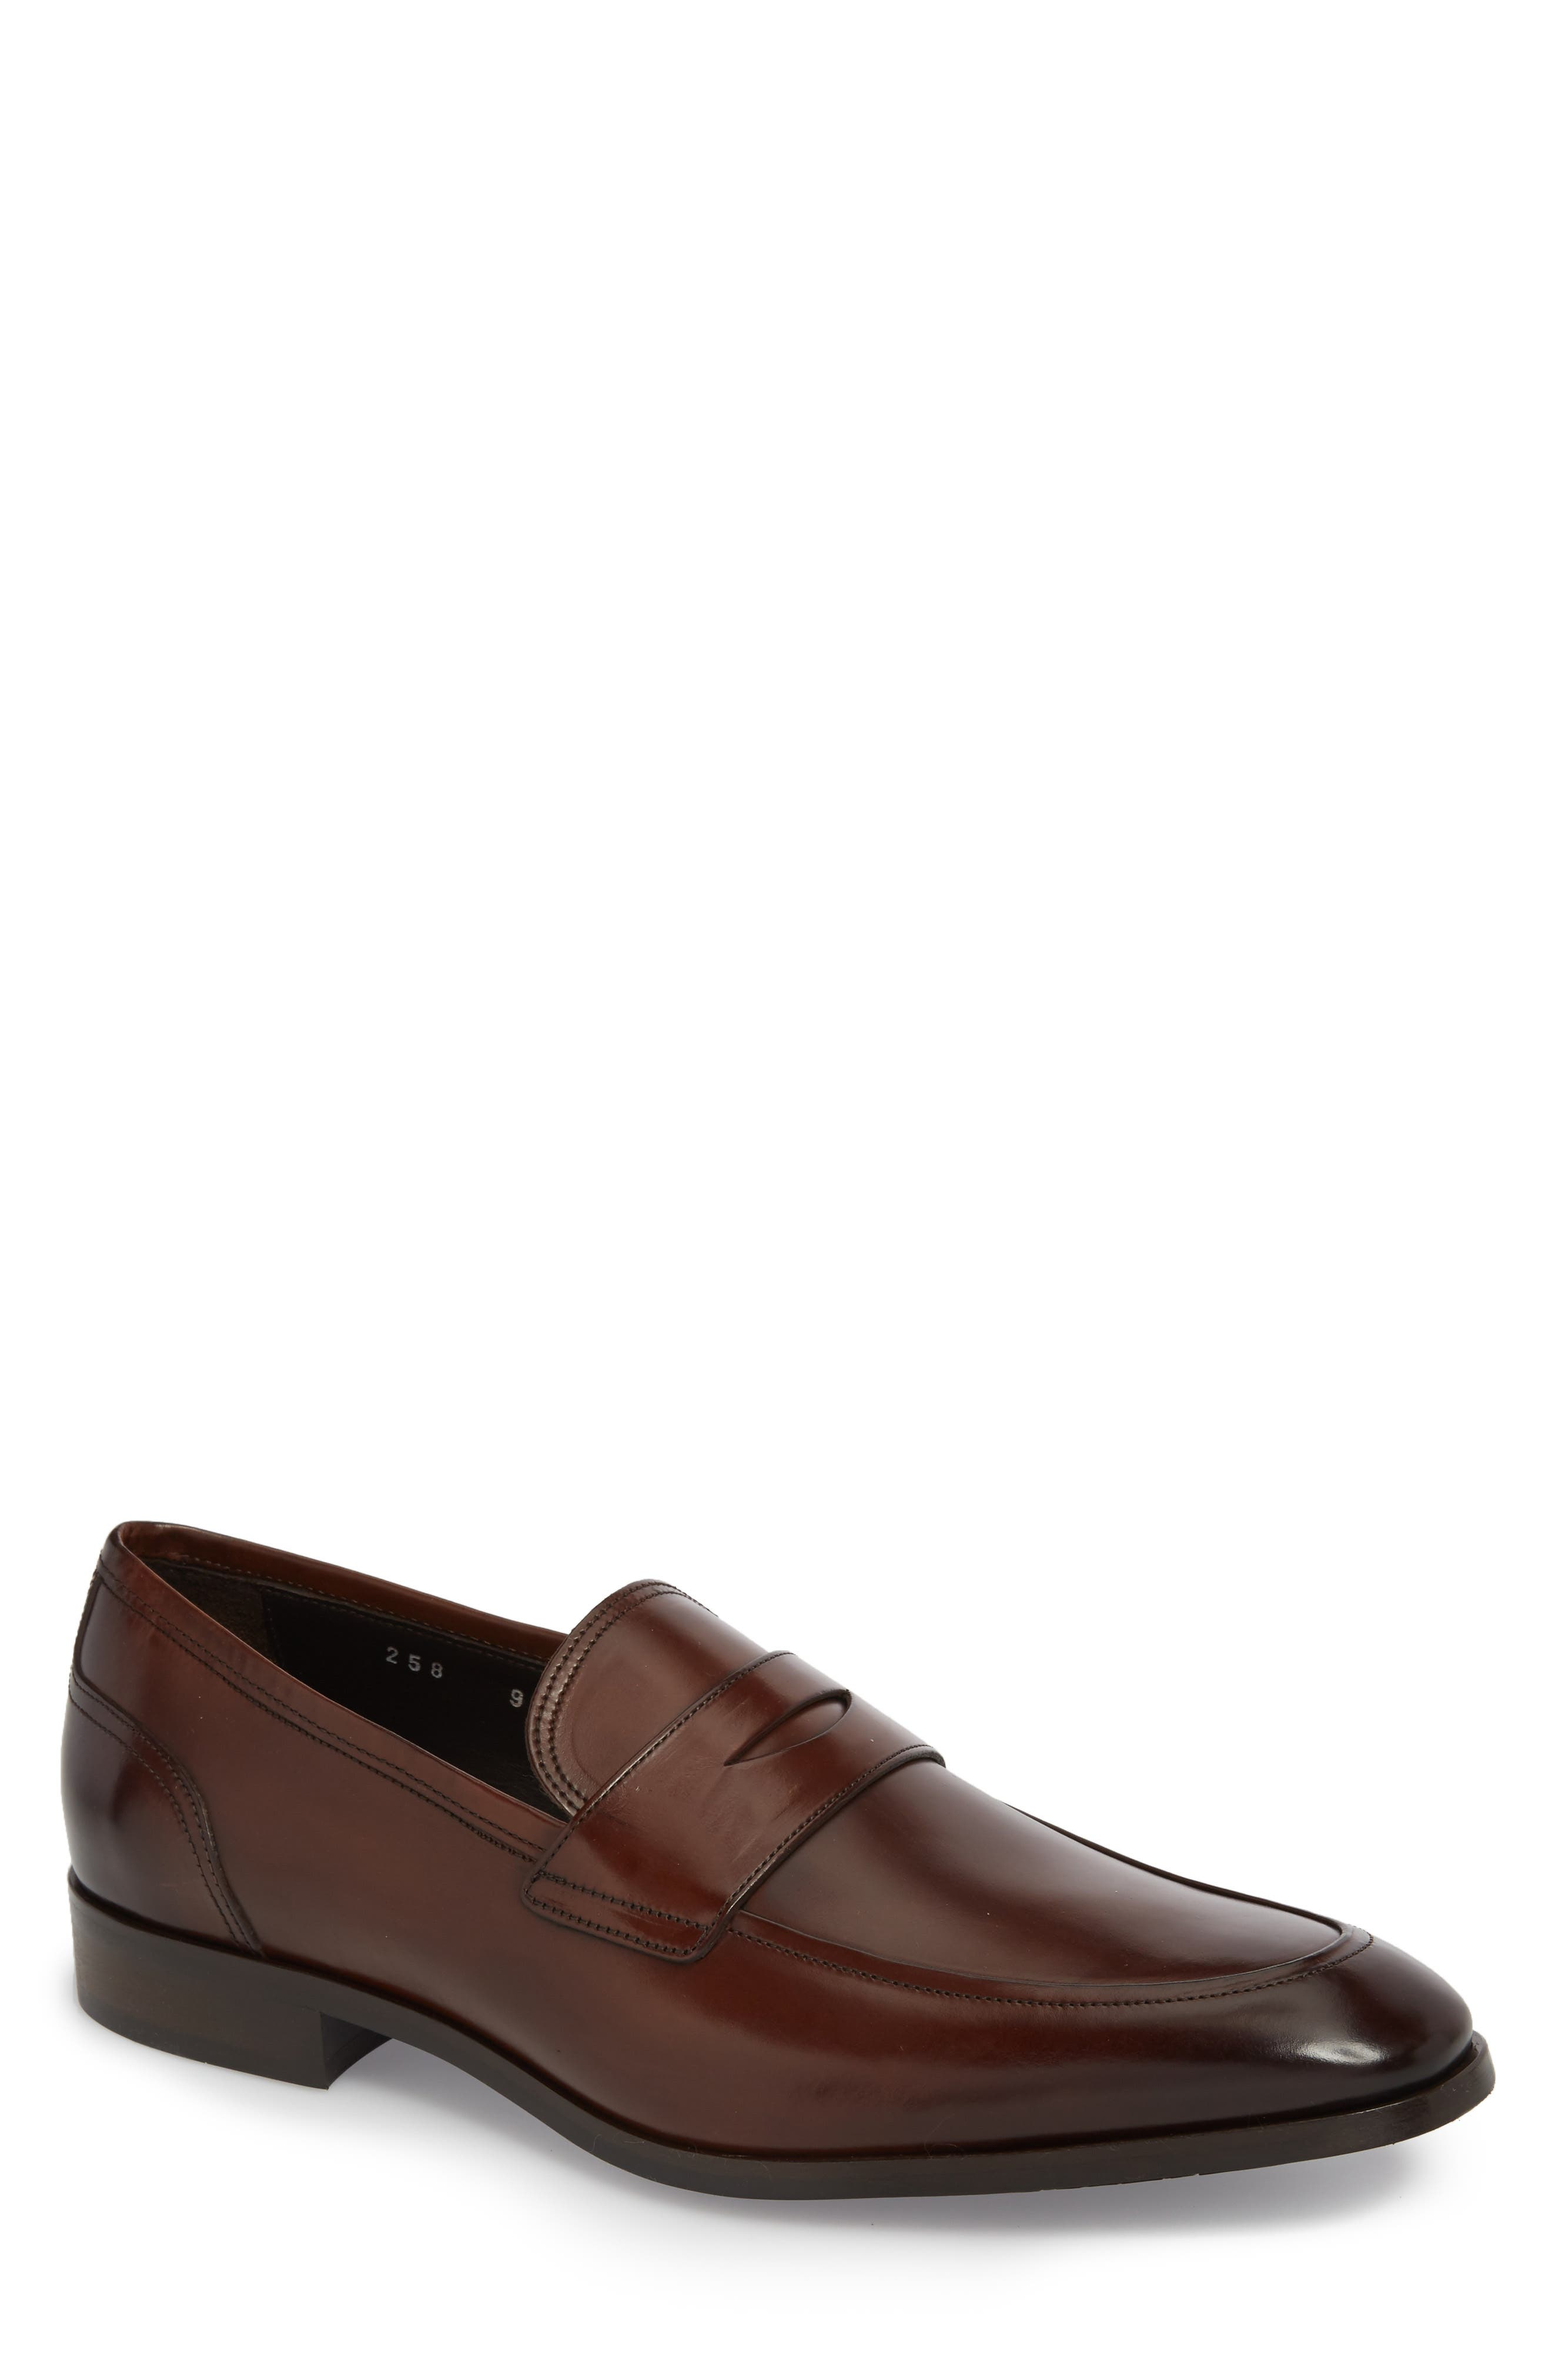 Deane Penny Loafer,                         Main,                         color, Marrone Leather